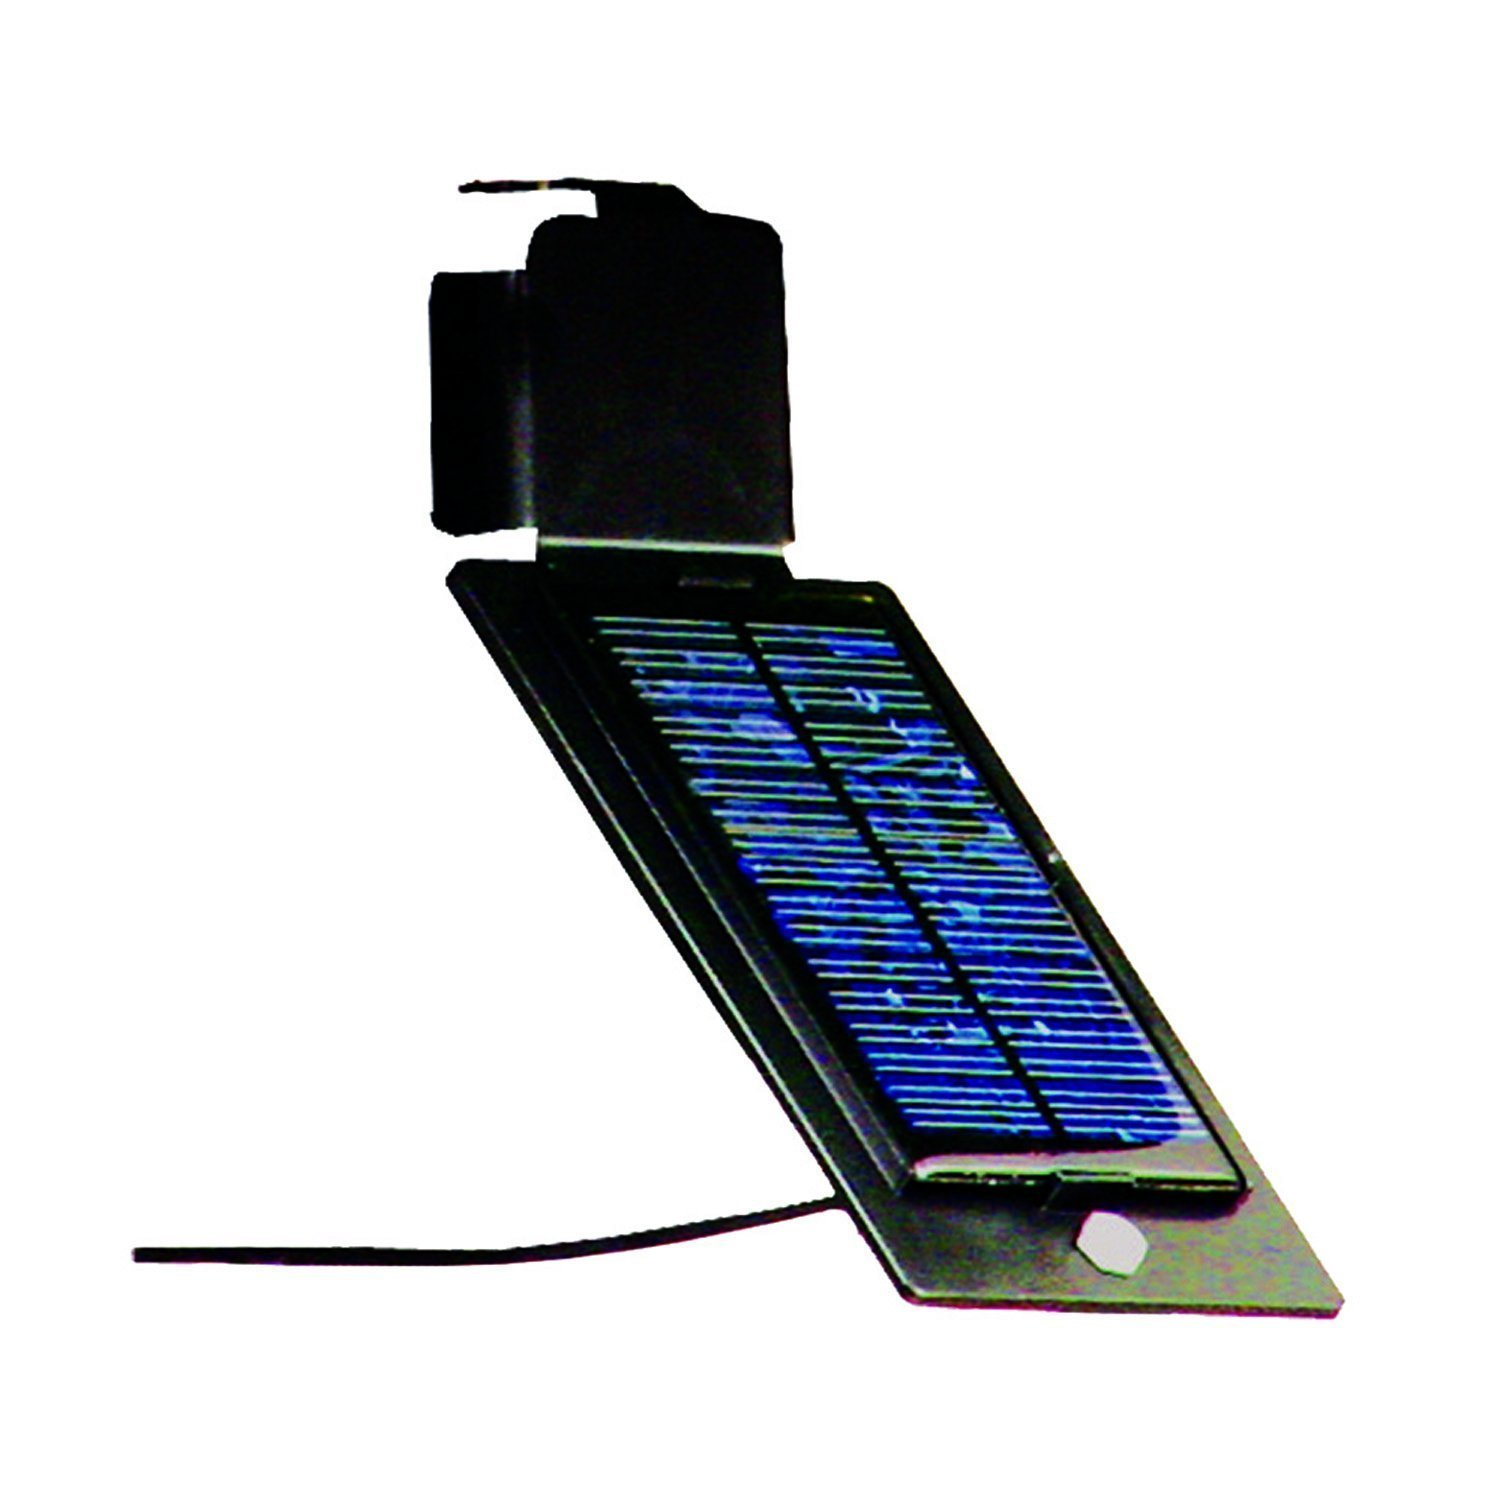 AMERICAN HUNTER Solar Charger for R-Kit, 6V by AMERICAN HUNTER (Image #1)